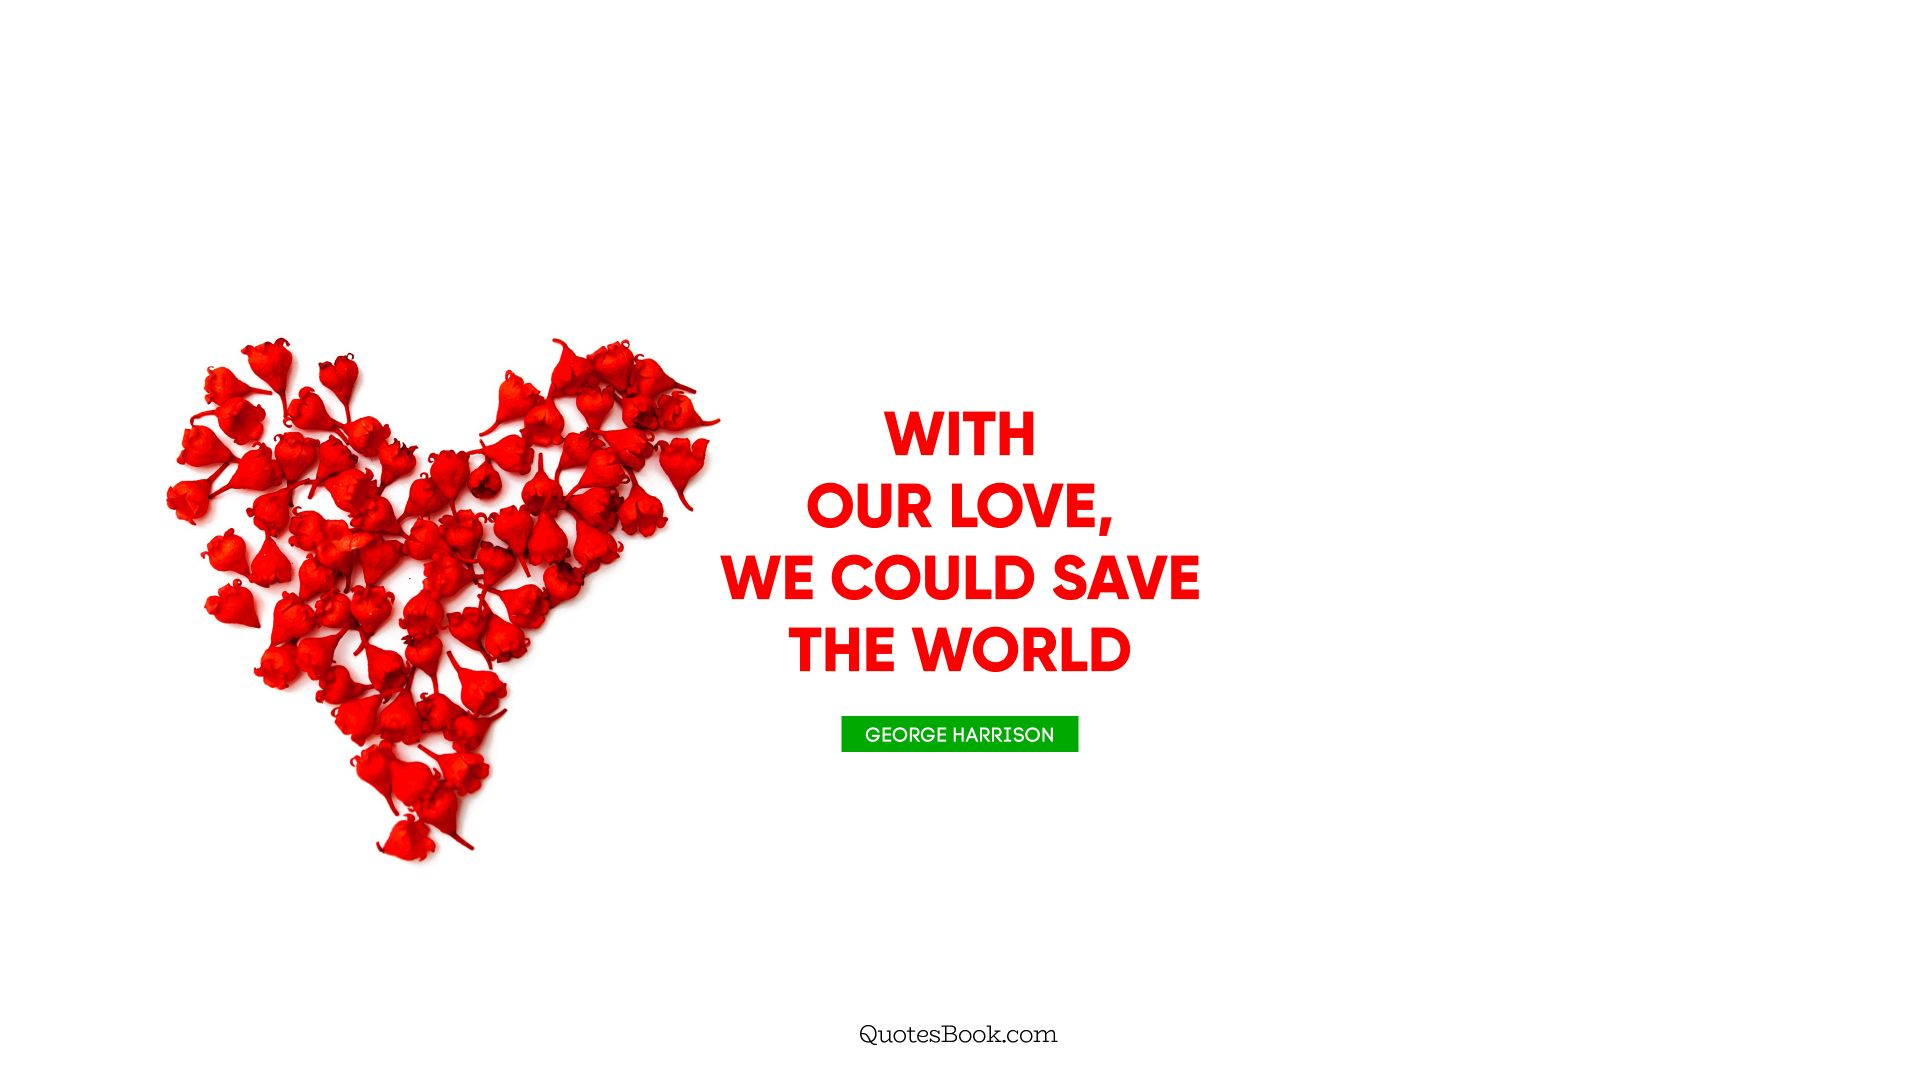 With our love, we could save the world. - Quote by George Harrison